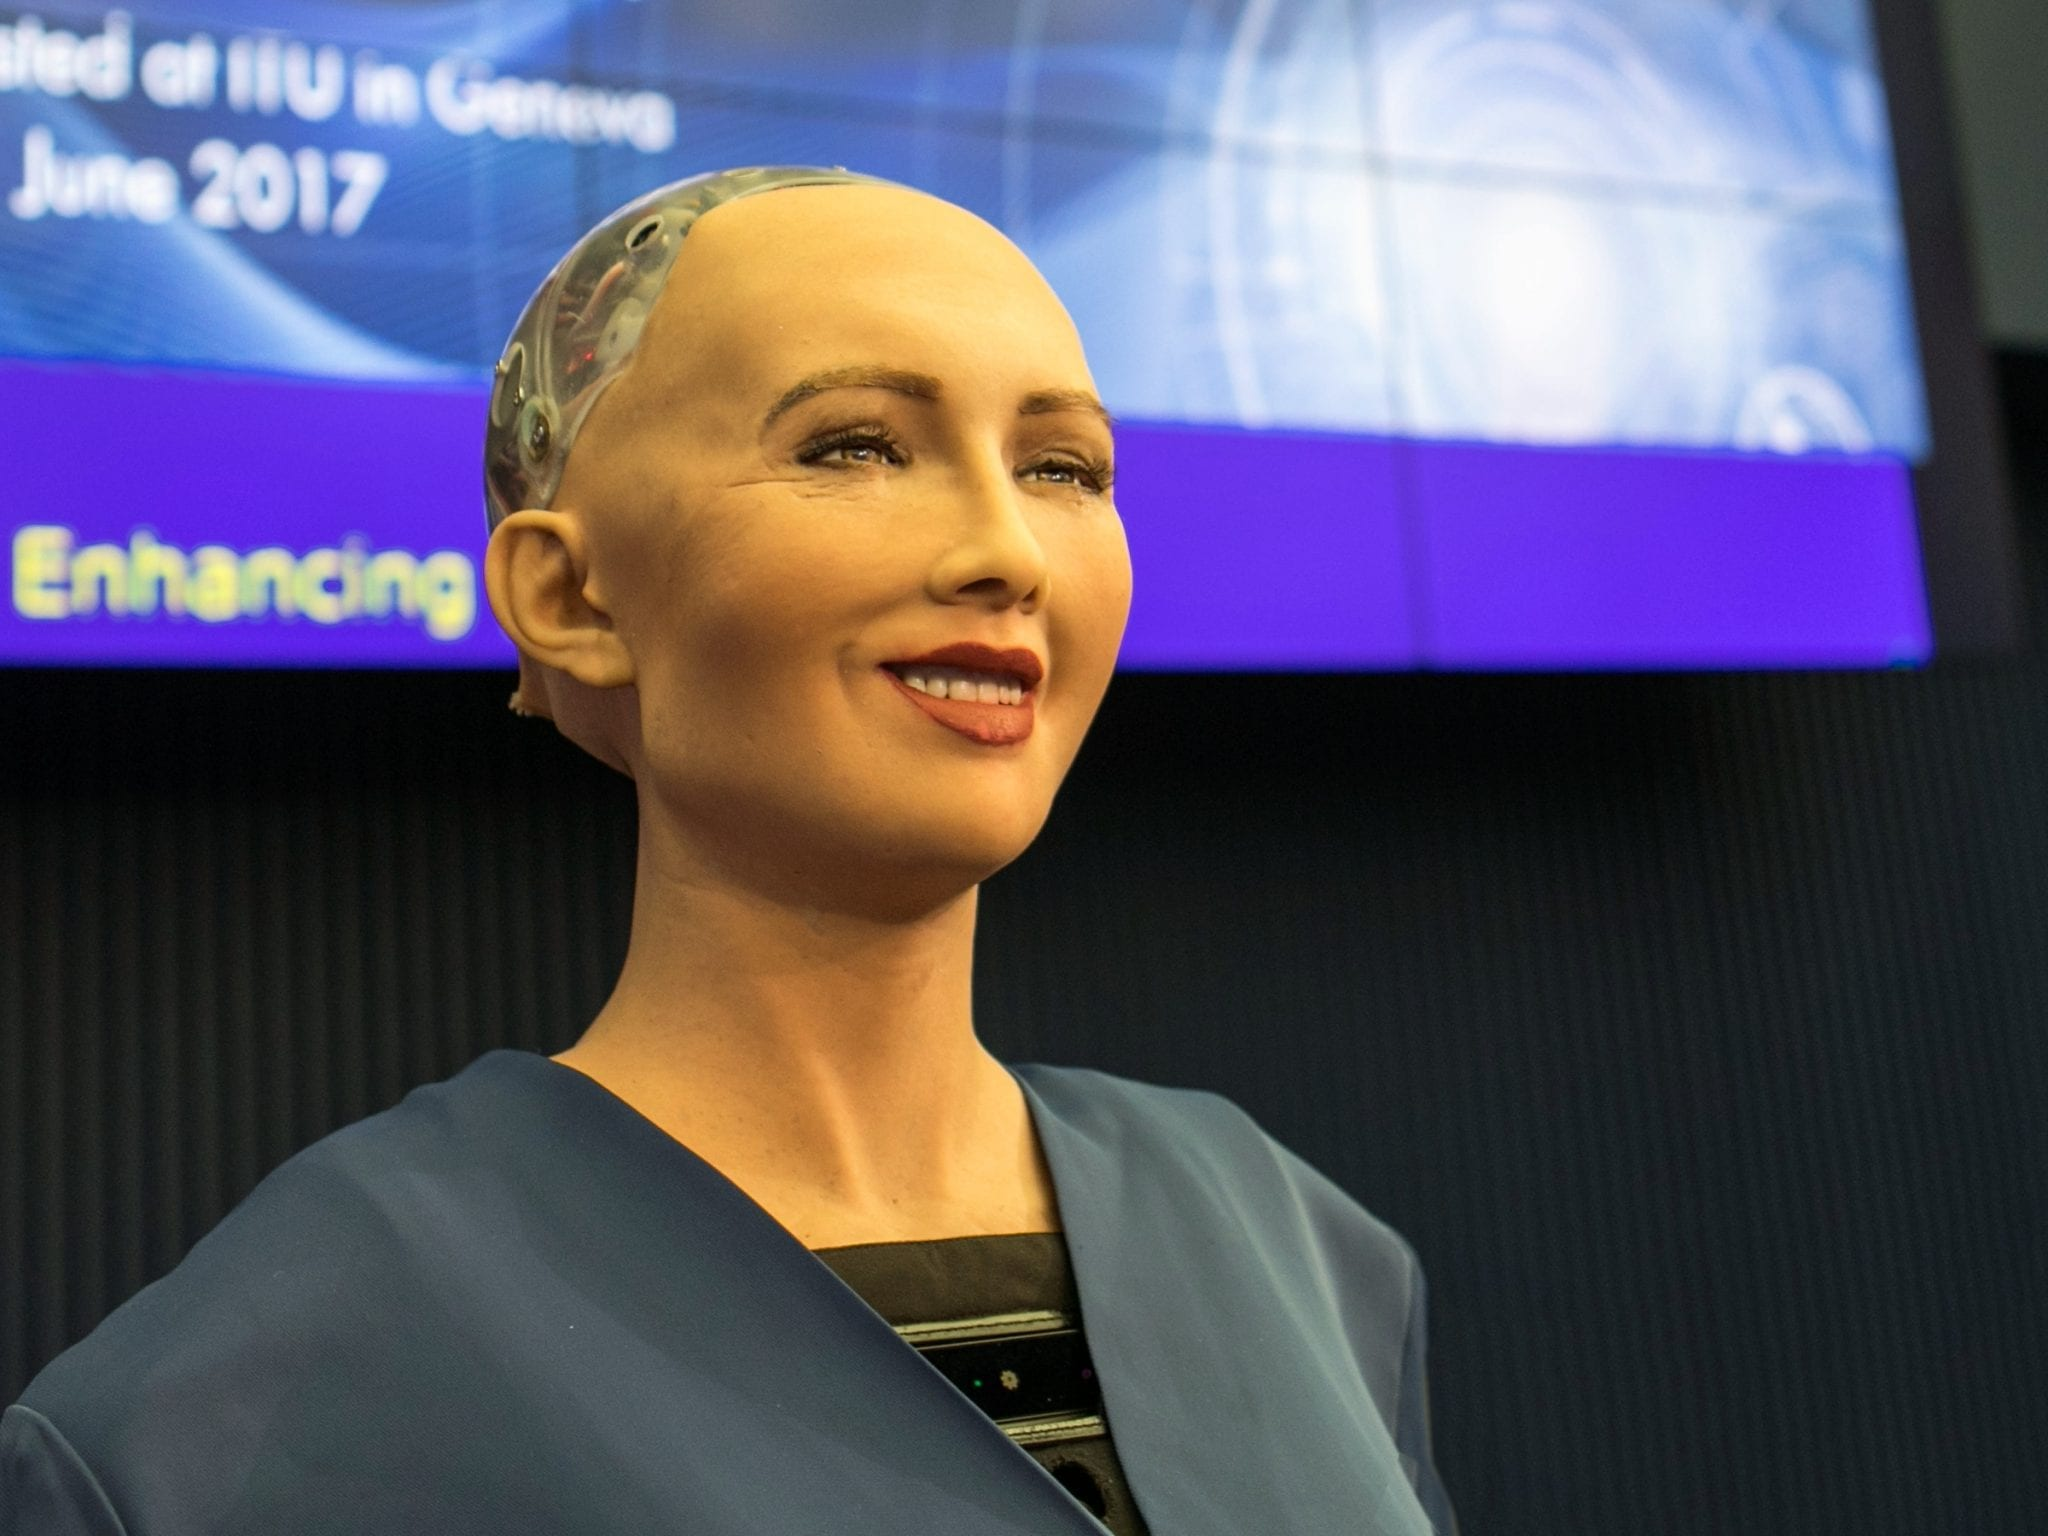 How Sophia Robot will help advance Science & Technology in 2020